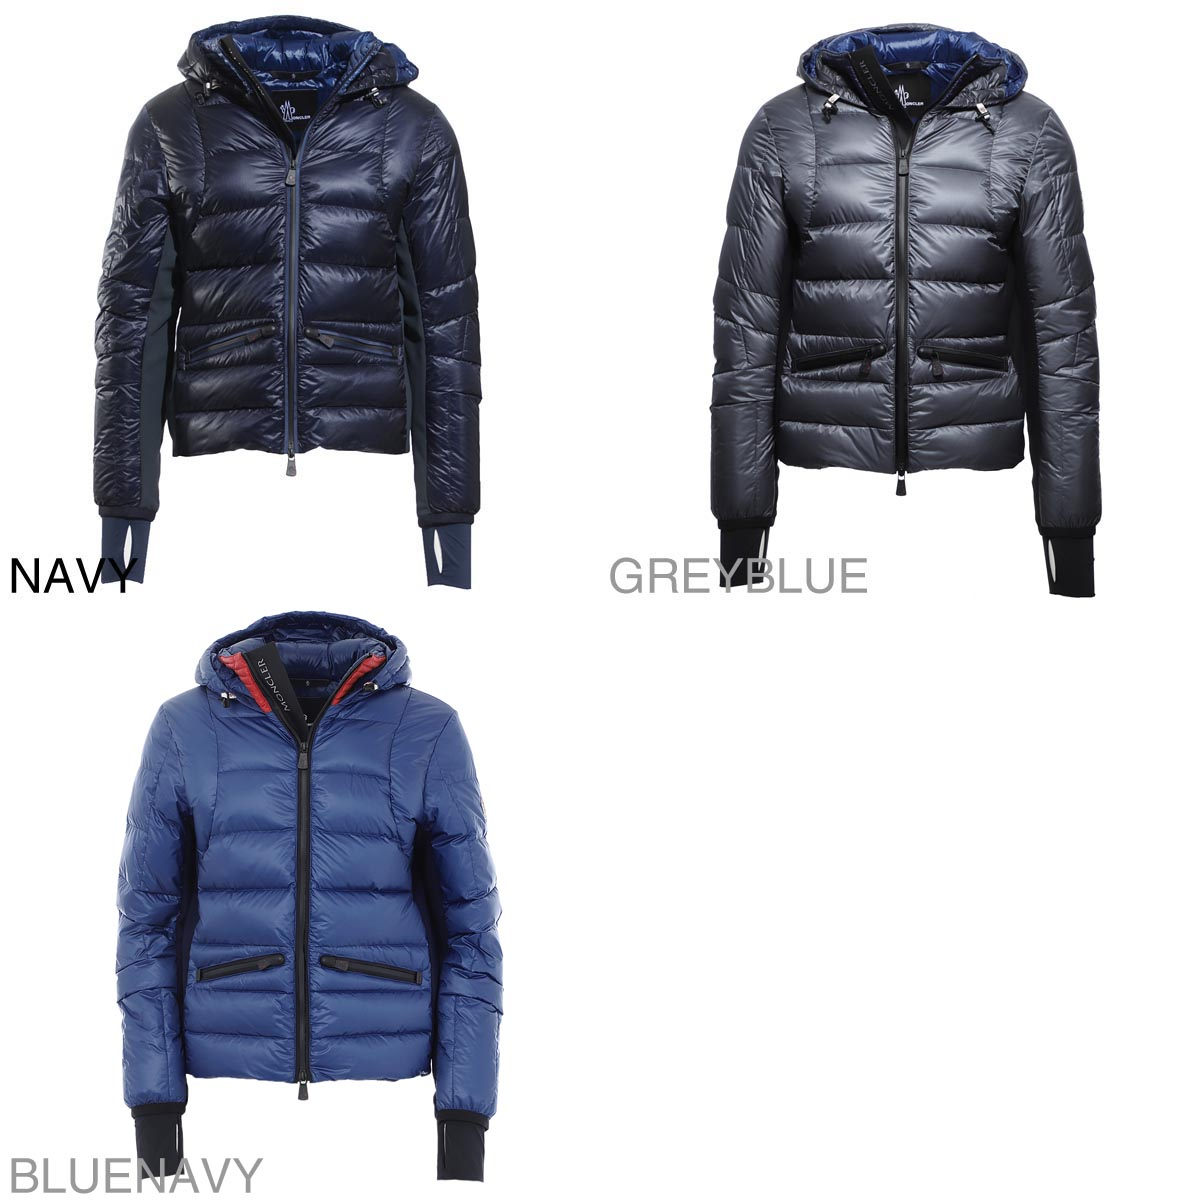 mouthe 4138185 53071 729 GRENOBLE Grenoble MOUTHE which there is the size that Monk rail MONCLER hooded down jacket men down outer winter clothing